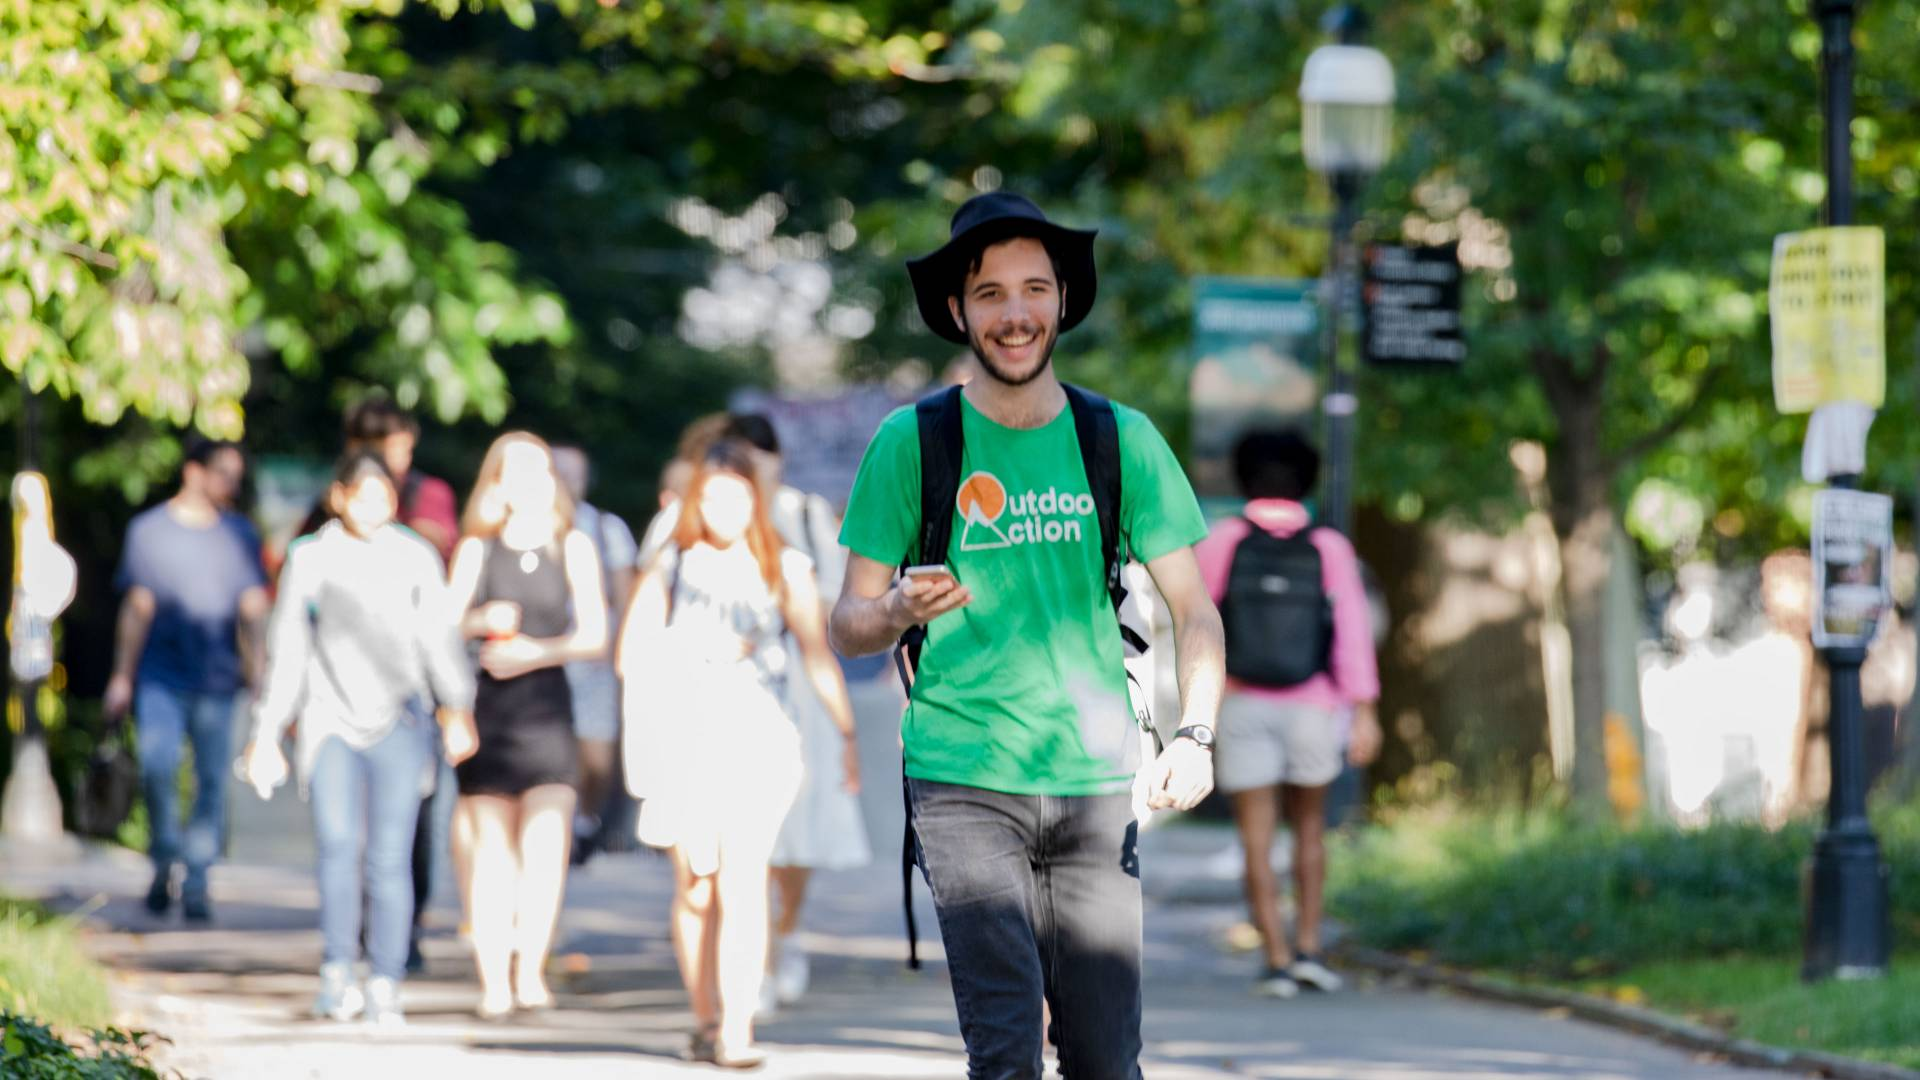 Student with Outdoor Action shirt walking on campus